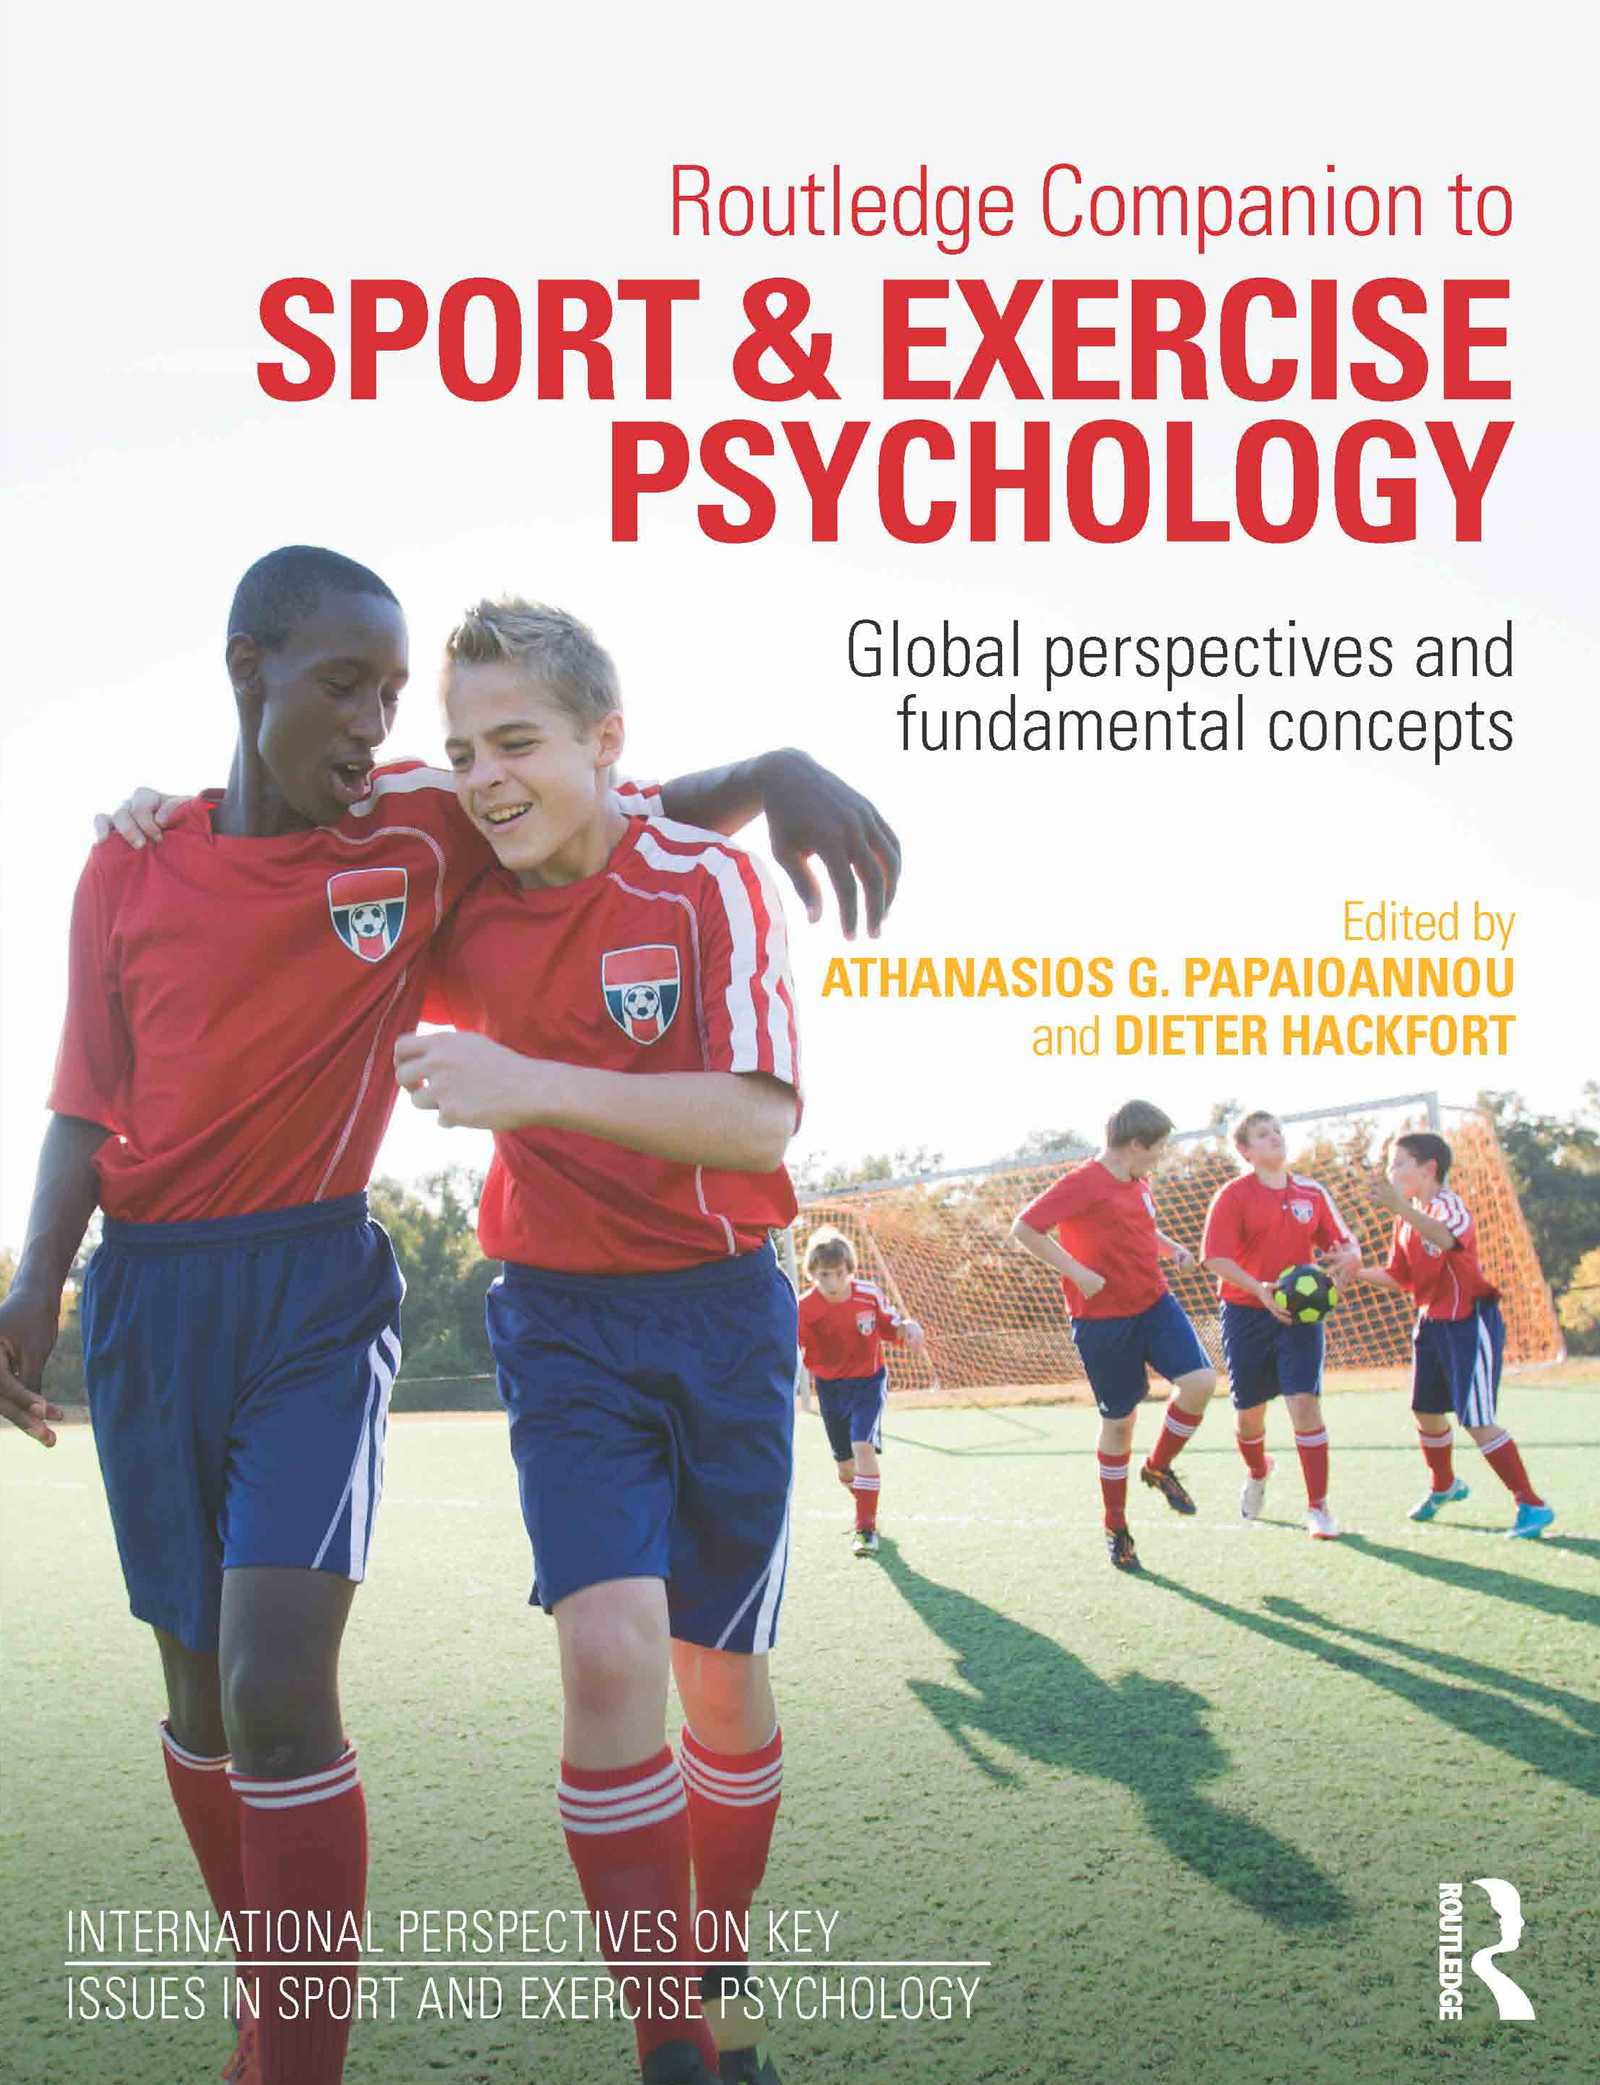 Routledge Companion to Sport and Exercise Psychology: Global perspectives and fundamental concepts book cover